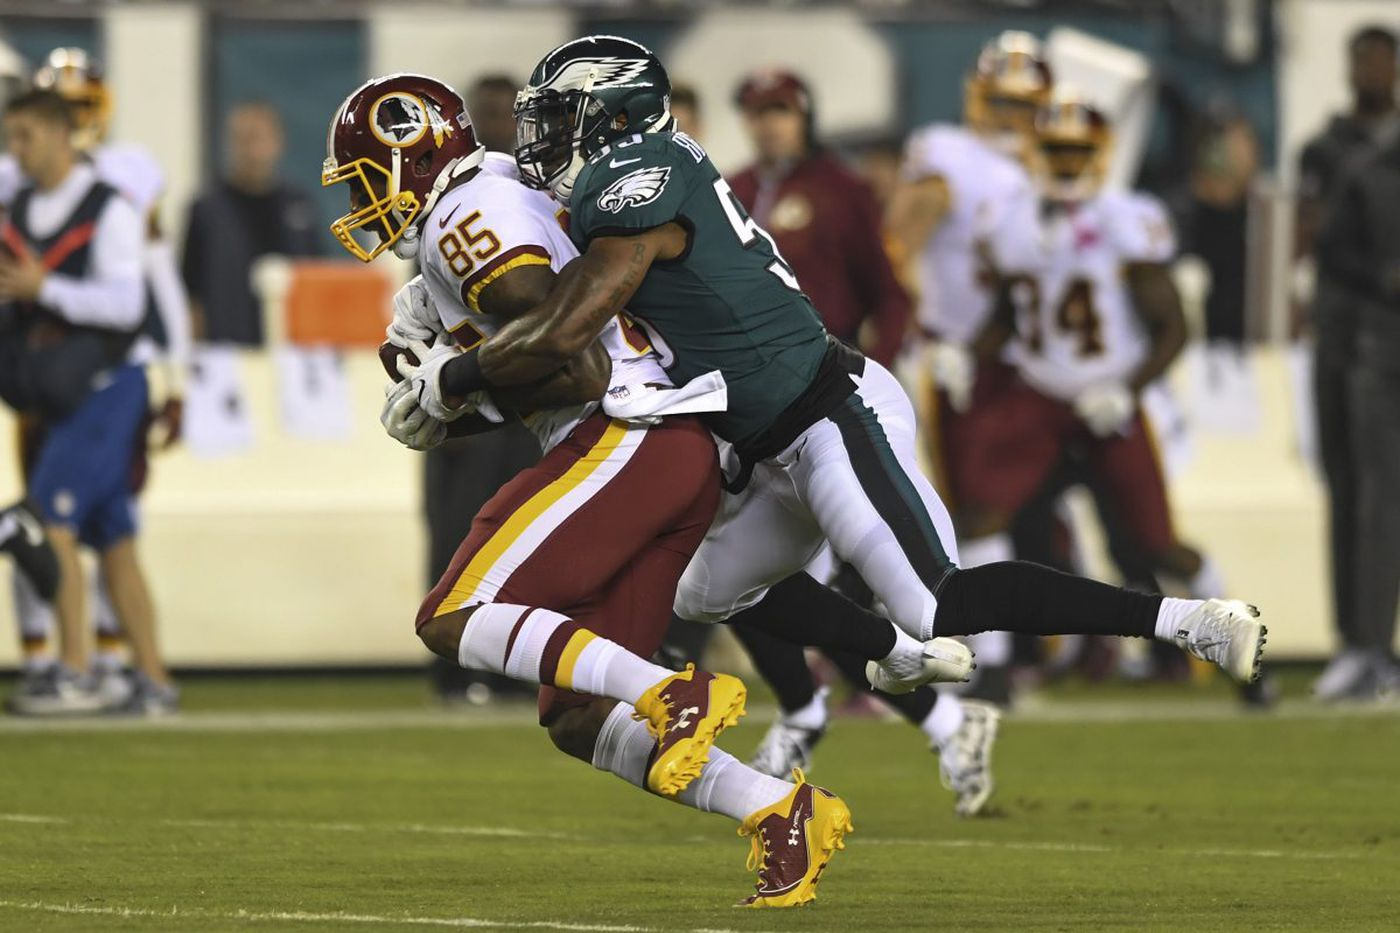 No running from the Eagles' defense